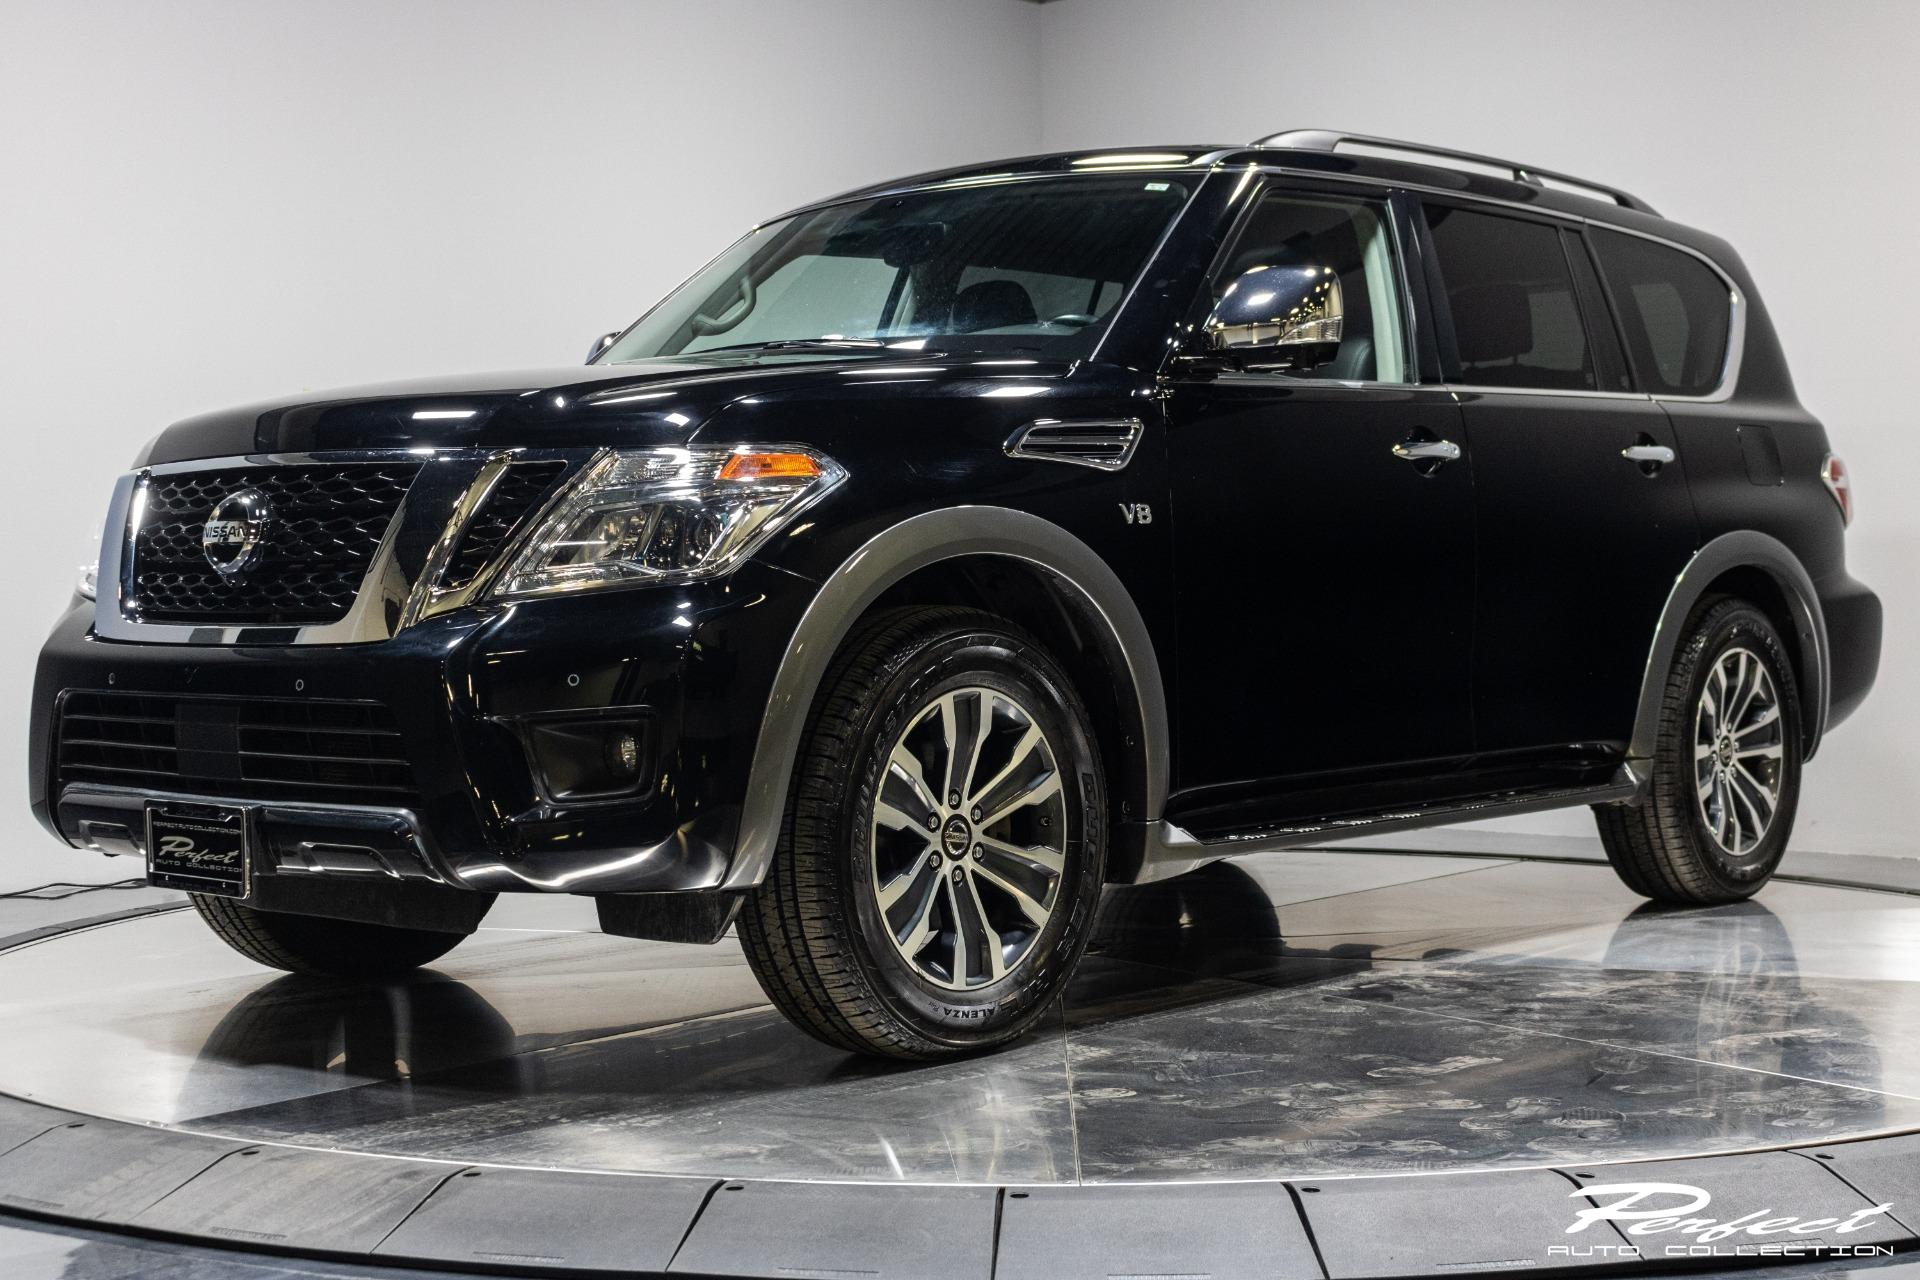 Used 2019 Nissan Armada SL for sale Sold at Perfect Auto Collection in Akron OH 44310 1